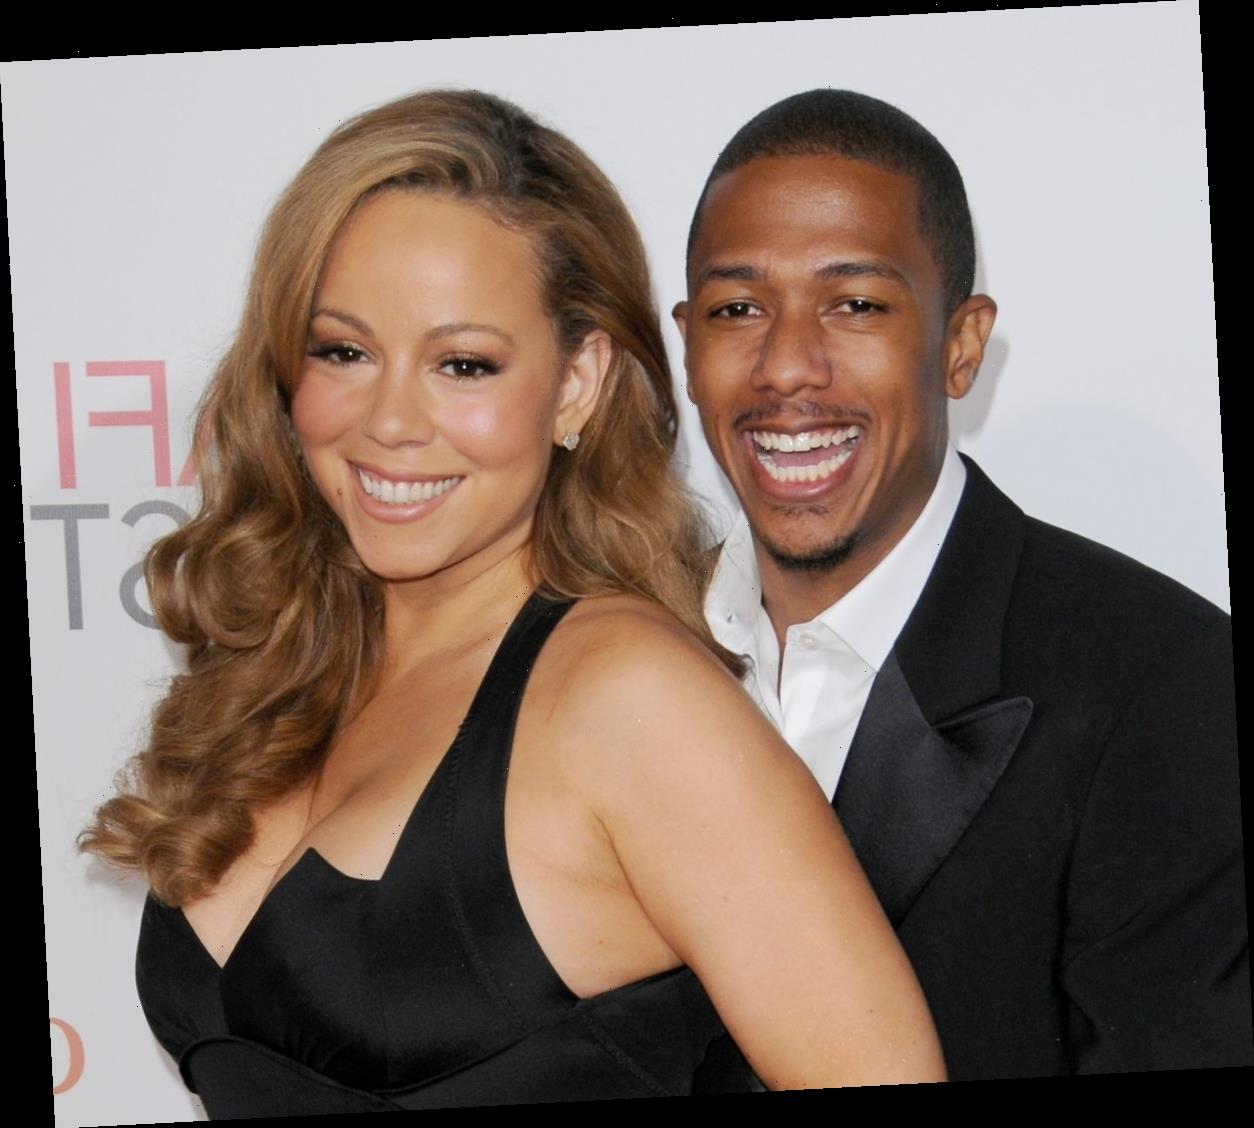 Mariah Carey Reveals Why She and Nick Cannon Got Married After Dating for Just 6 Weeks